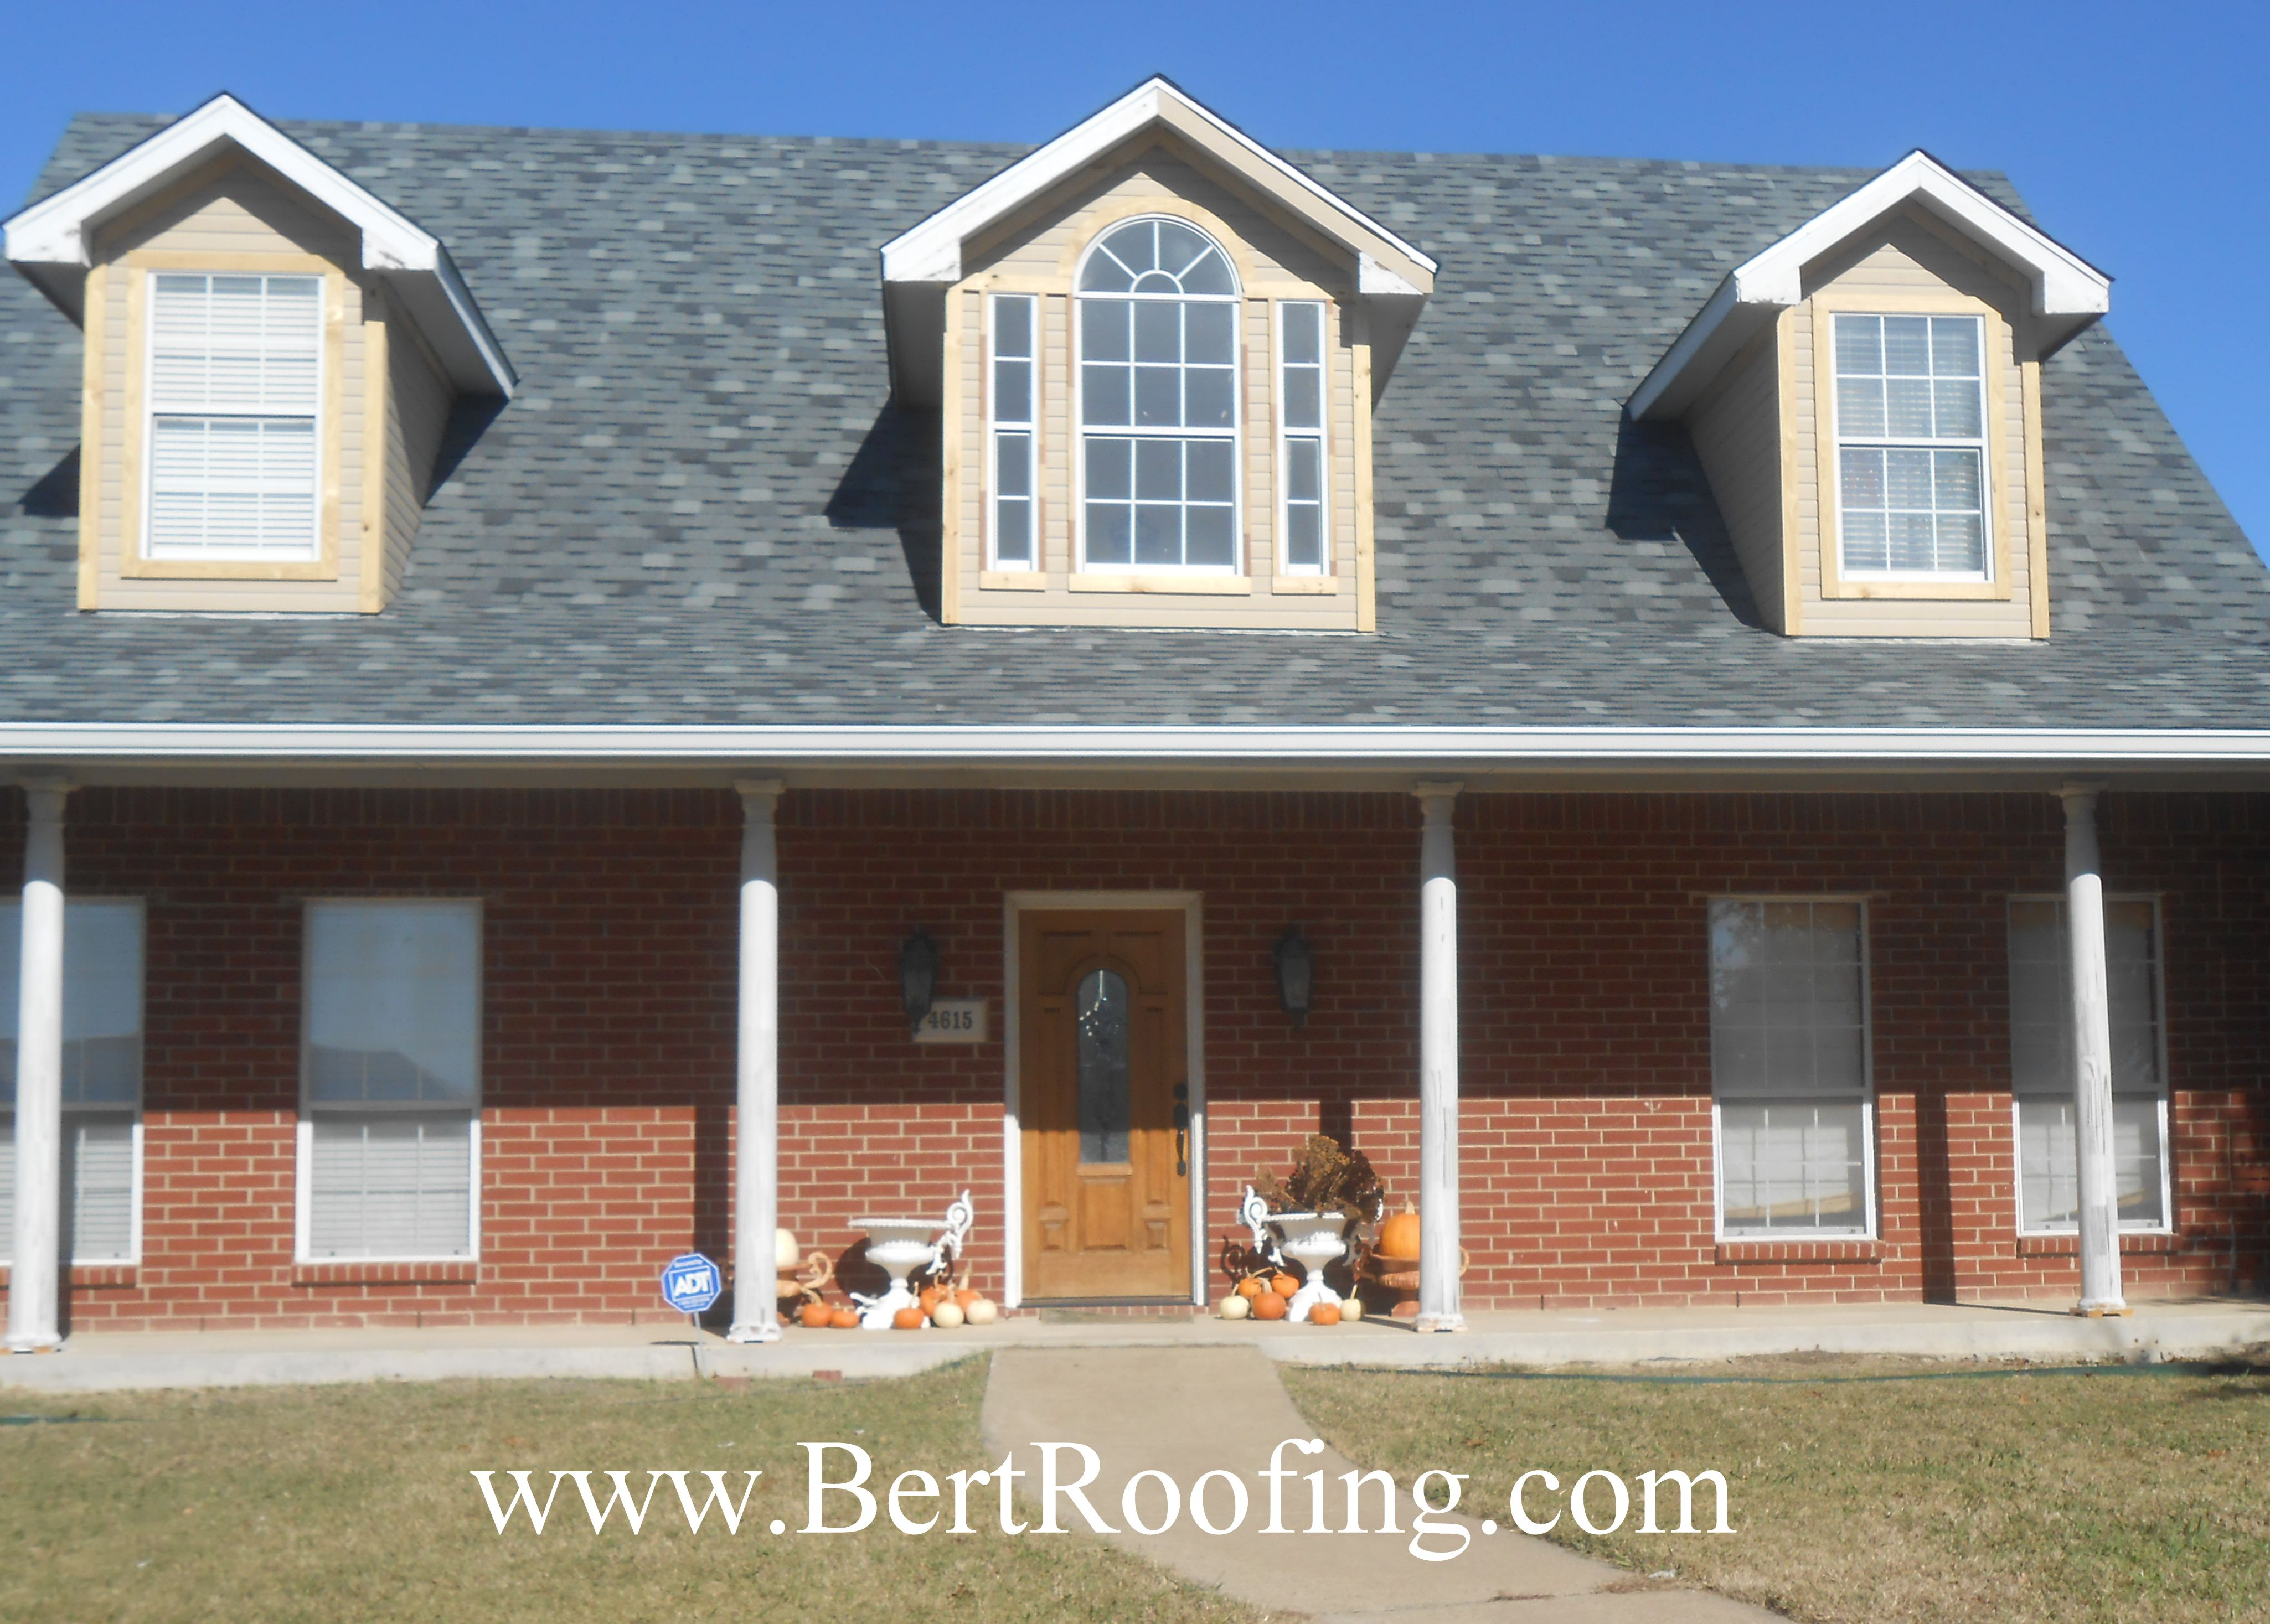 Certainteed Presidential Composition Shingle Color Weathered Wood Installed By Bert Roofing Inc Of Dallas In Wylie On Roofing Roofing Contractors Certainteed